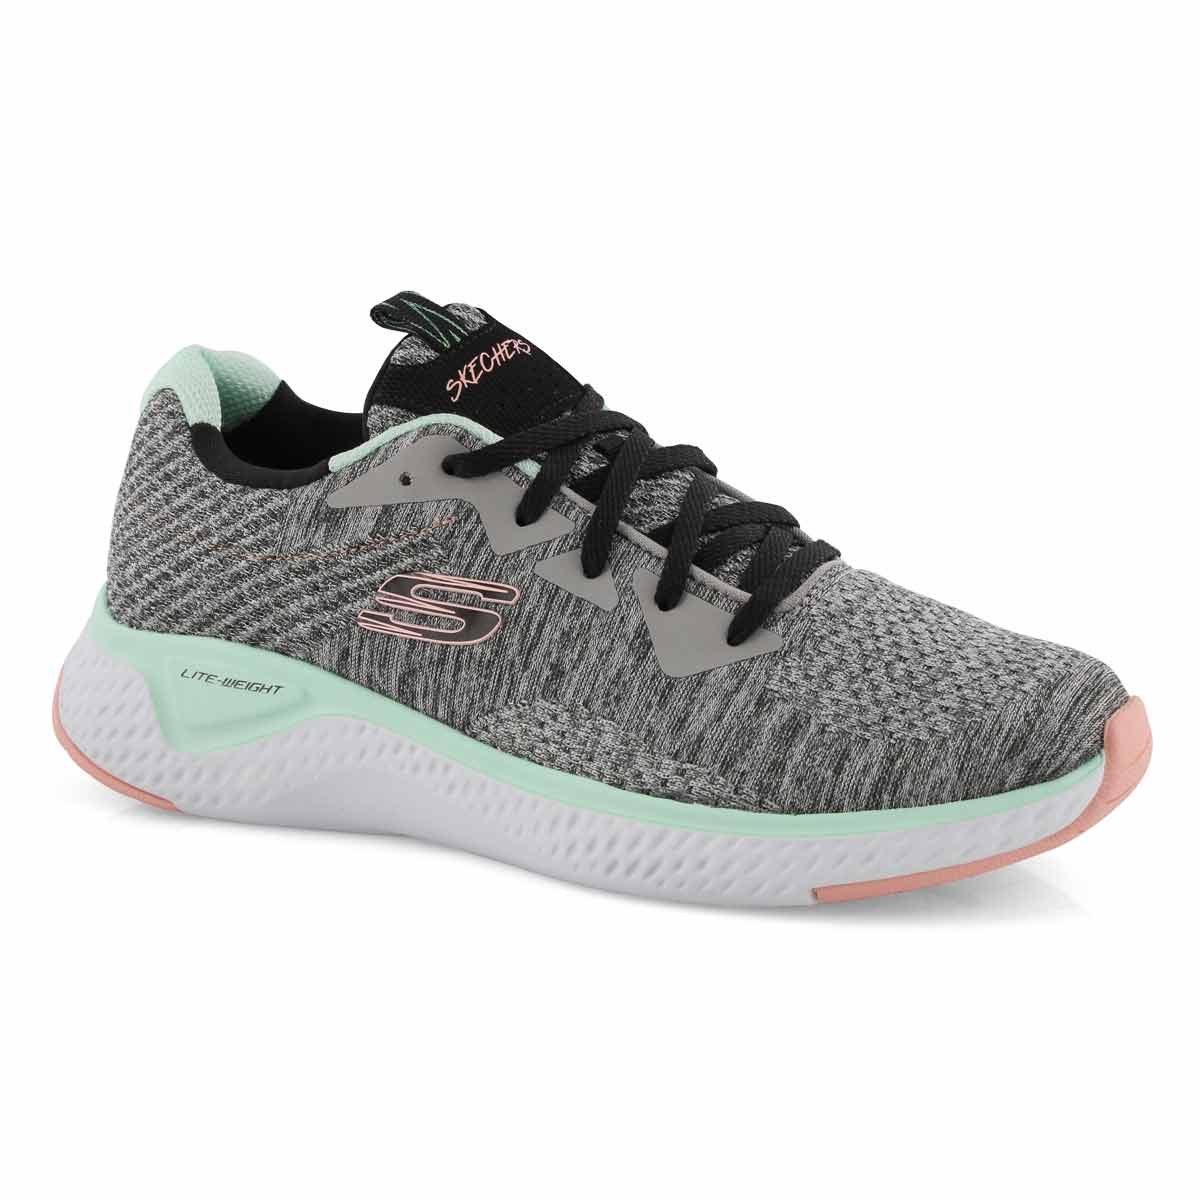 Lds Solar Fuse Brisk Escape gry/mlt snkr